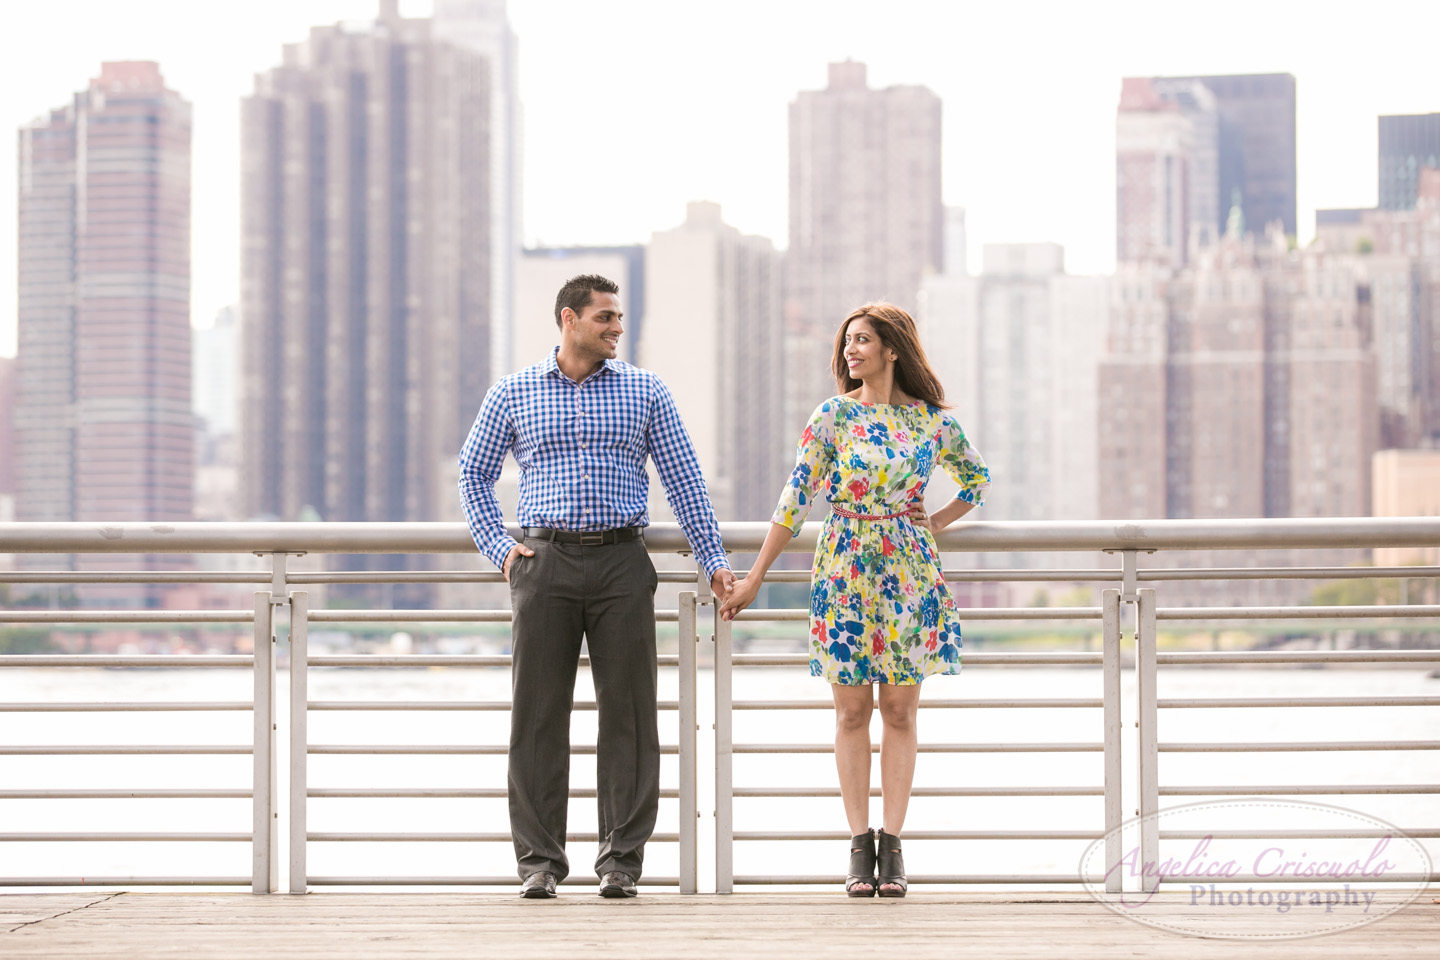 Queens NY Engagement Photo Ideas